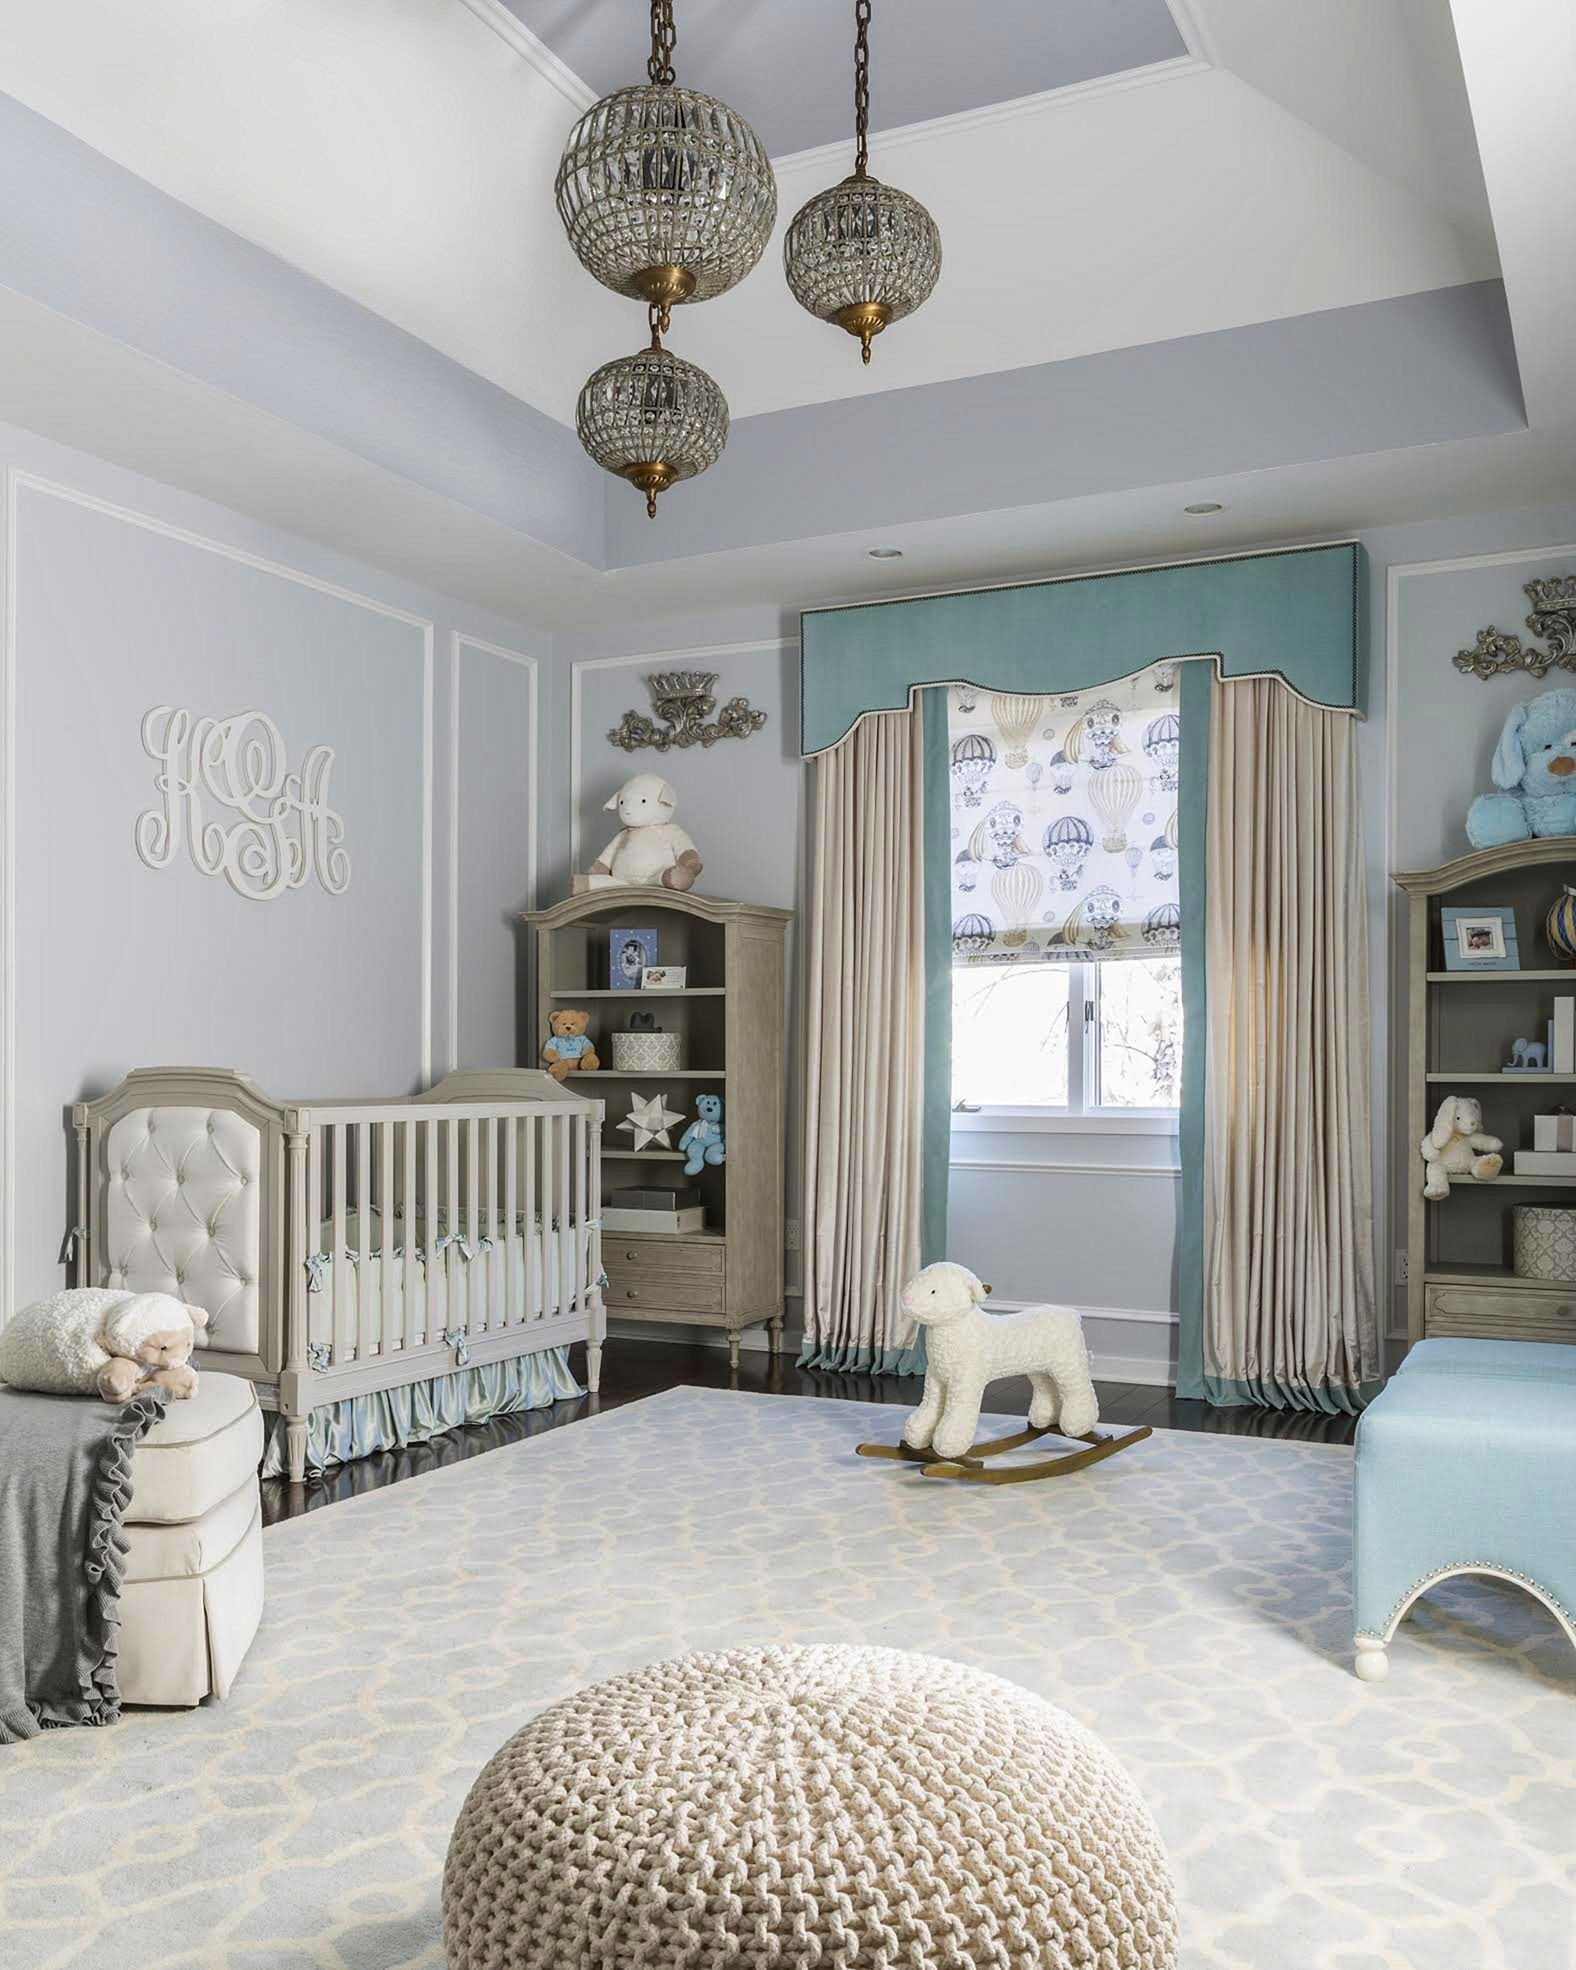 Tiffany Blue Bedroom Ideas Elegant Pin On Ci Anna Danielle & Tylen Jax